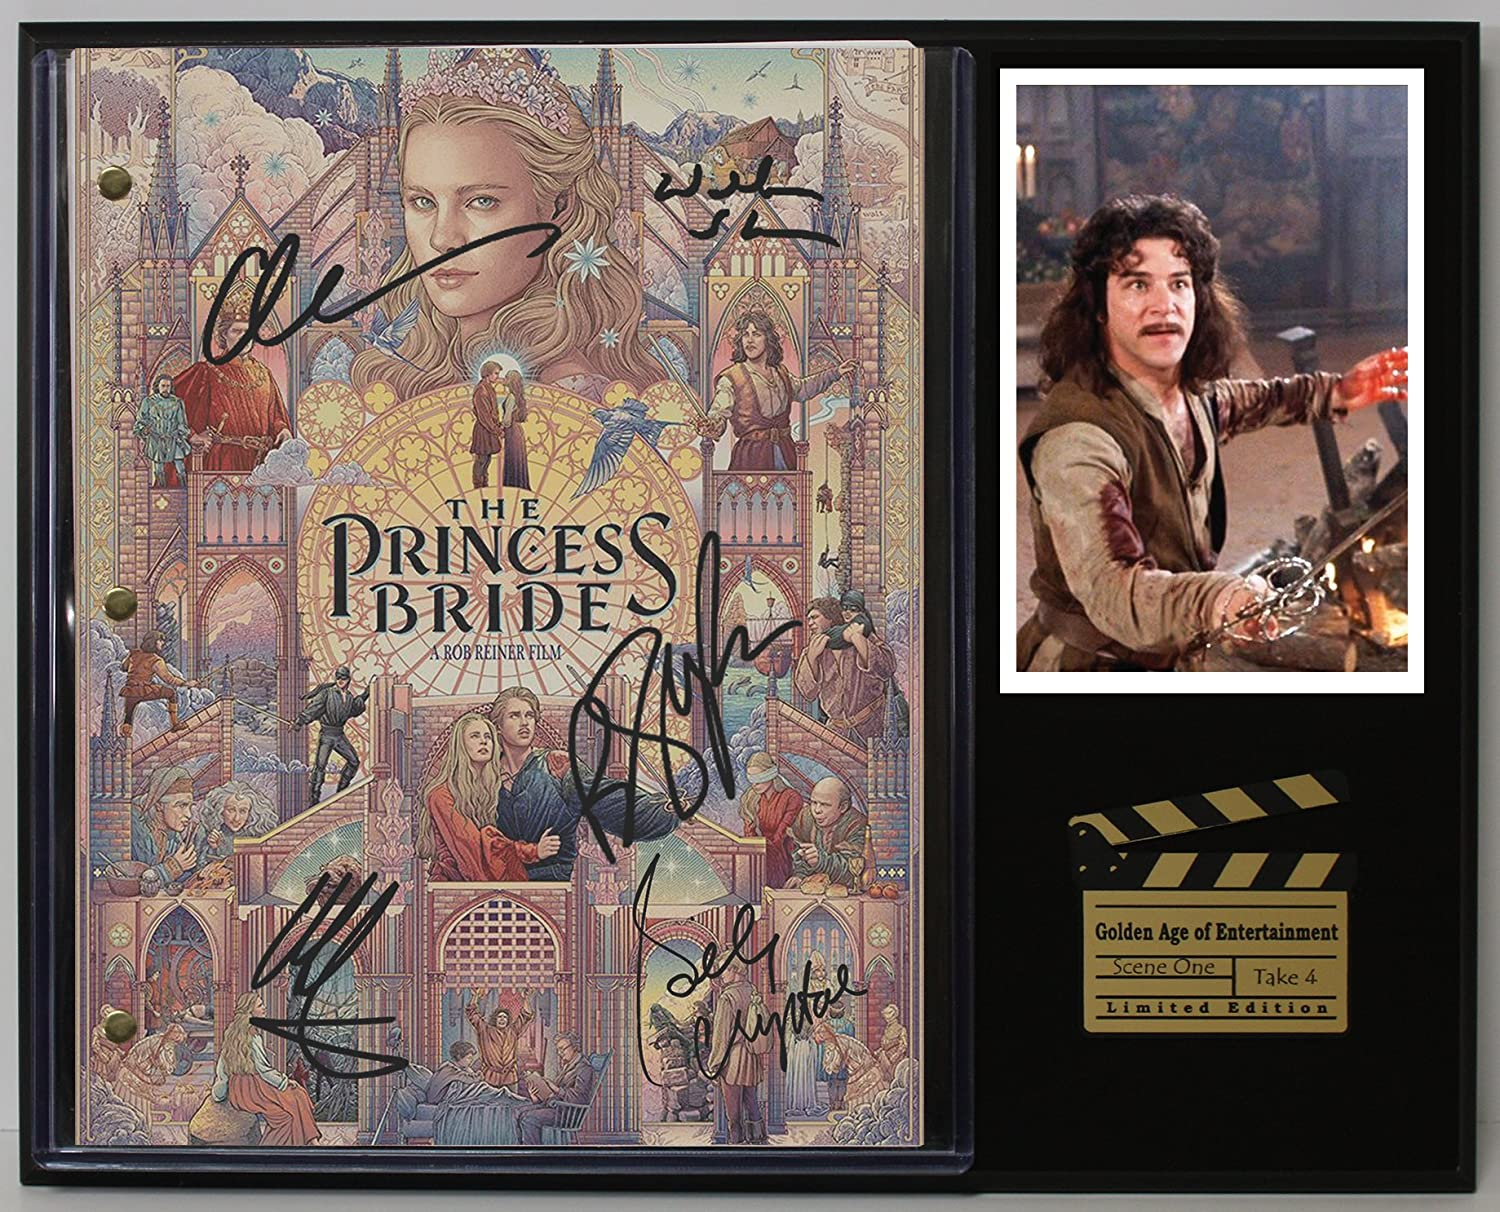 The Princess Bride Ltd Edition Reproduction Movie Script Cinema Display C3